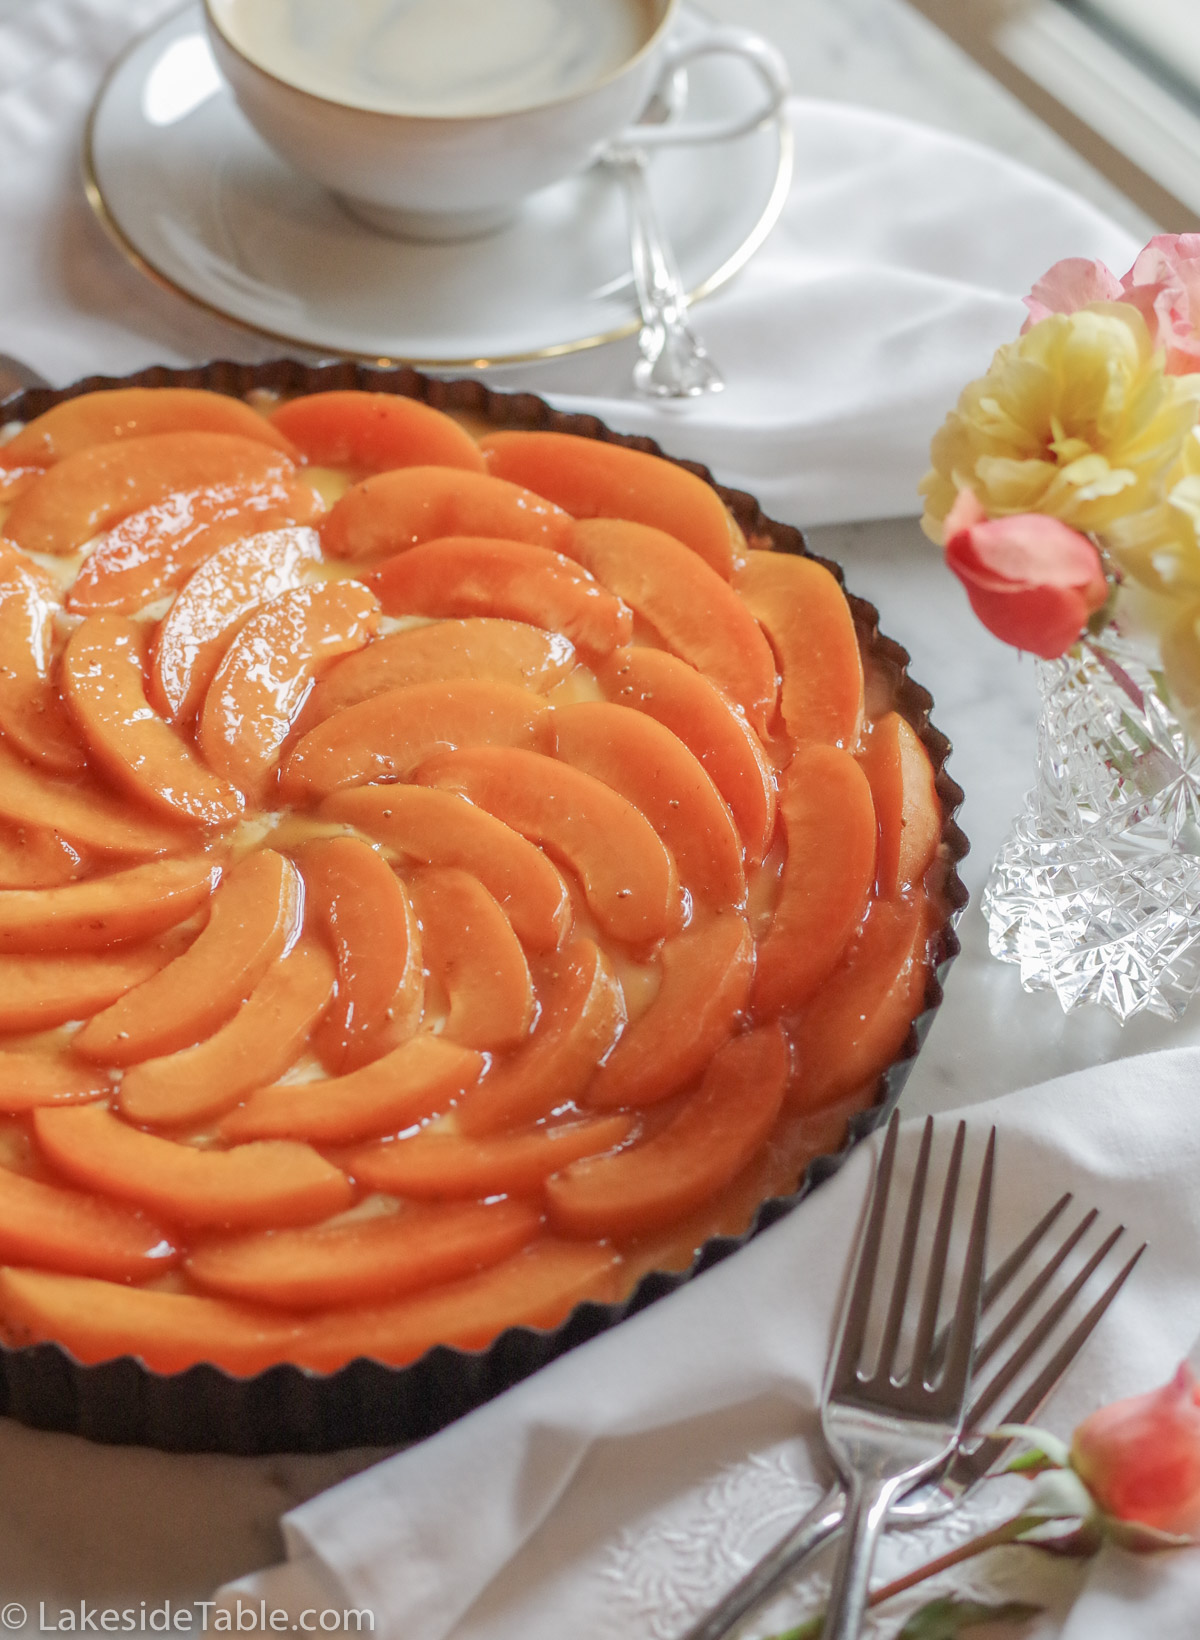 Apricot Tart inspired by Durnstein & the Danube